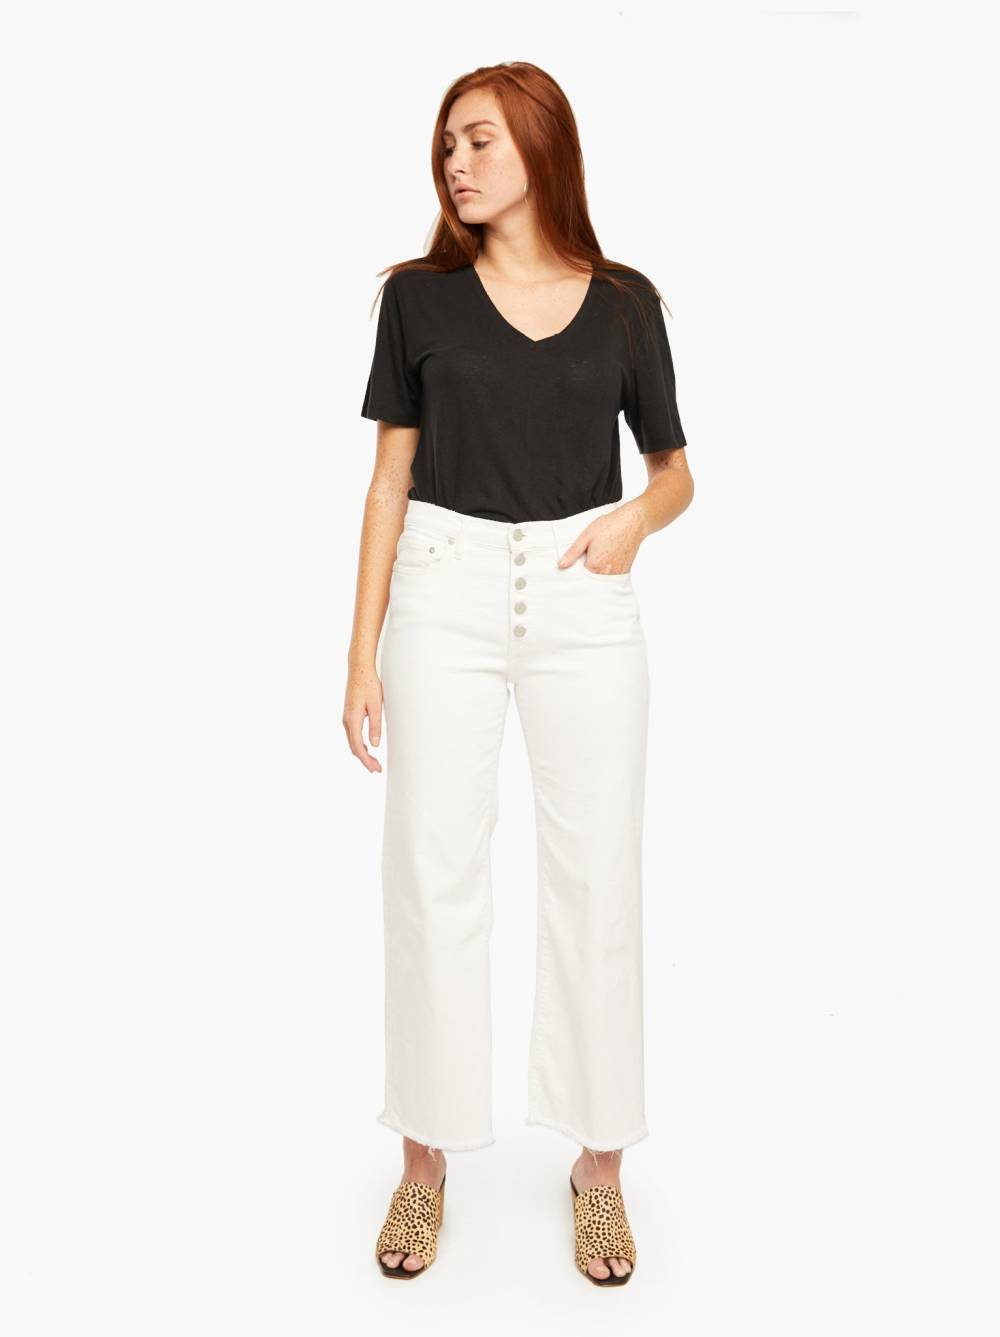 able jeans inverted triangle outfits